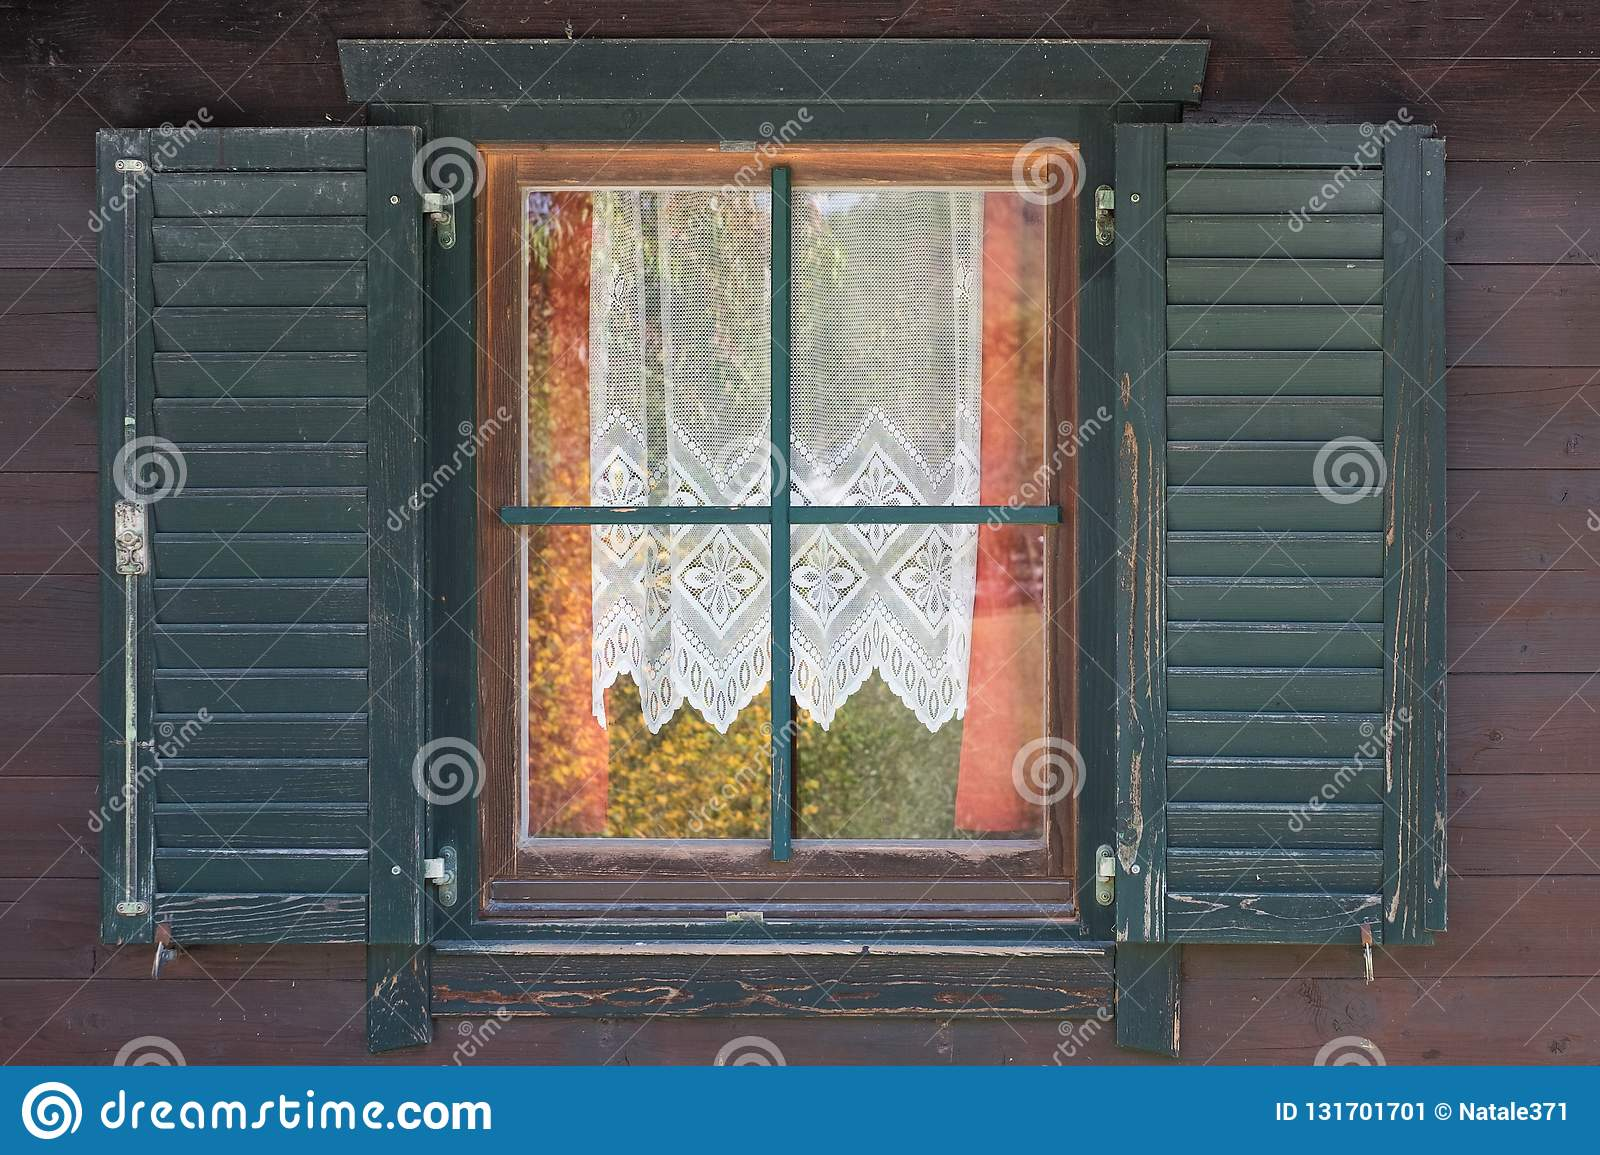 Window In The Old Style With Open Shutters And Openwork